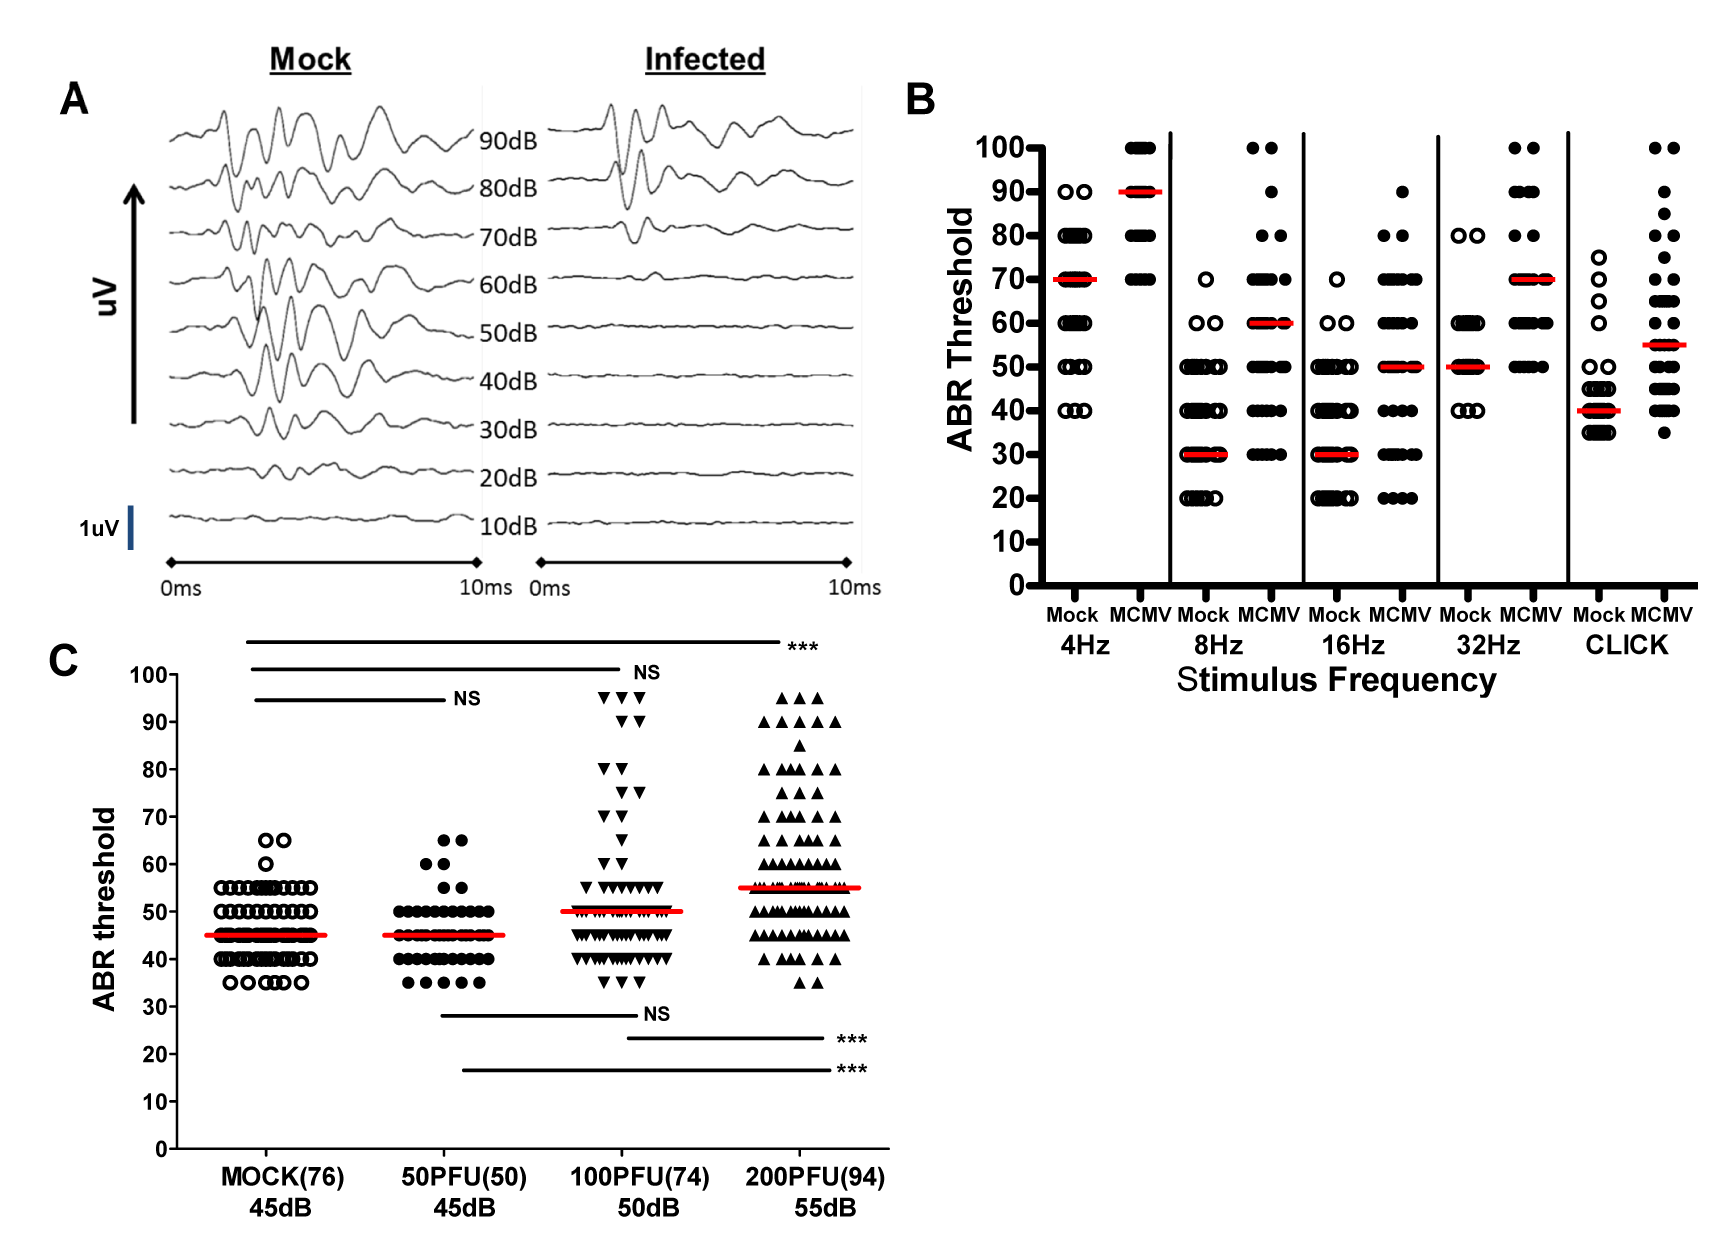 Auditory brainstem evoked response (ABR) testing in infected mice.